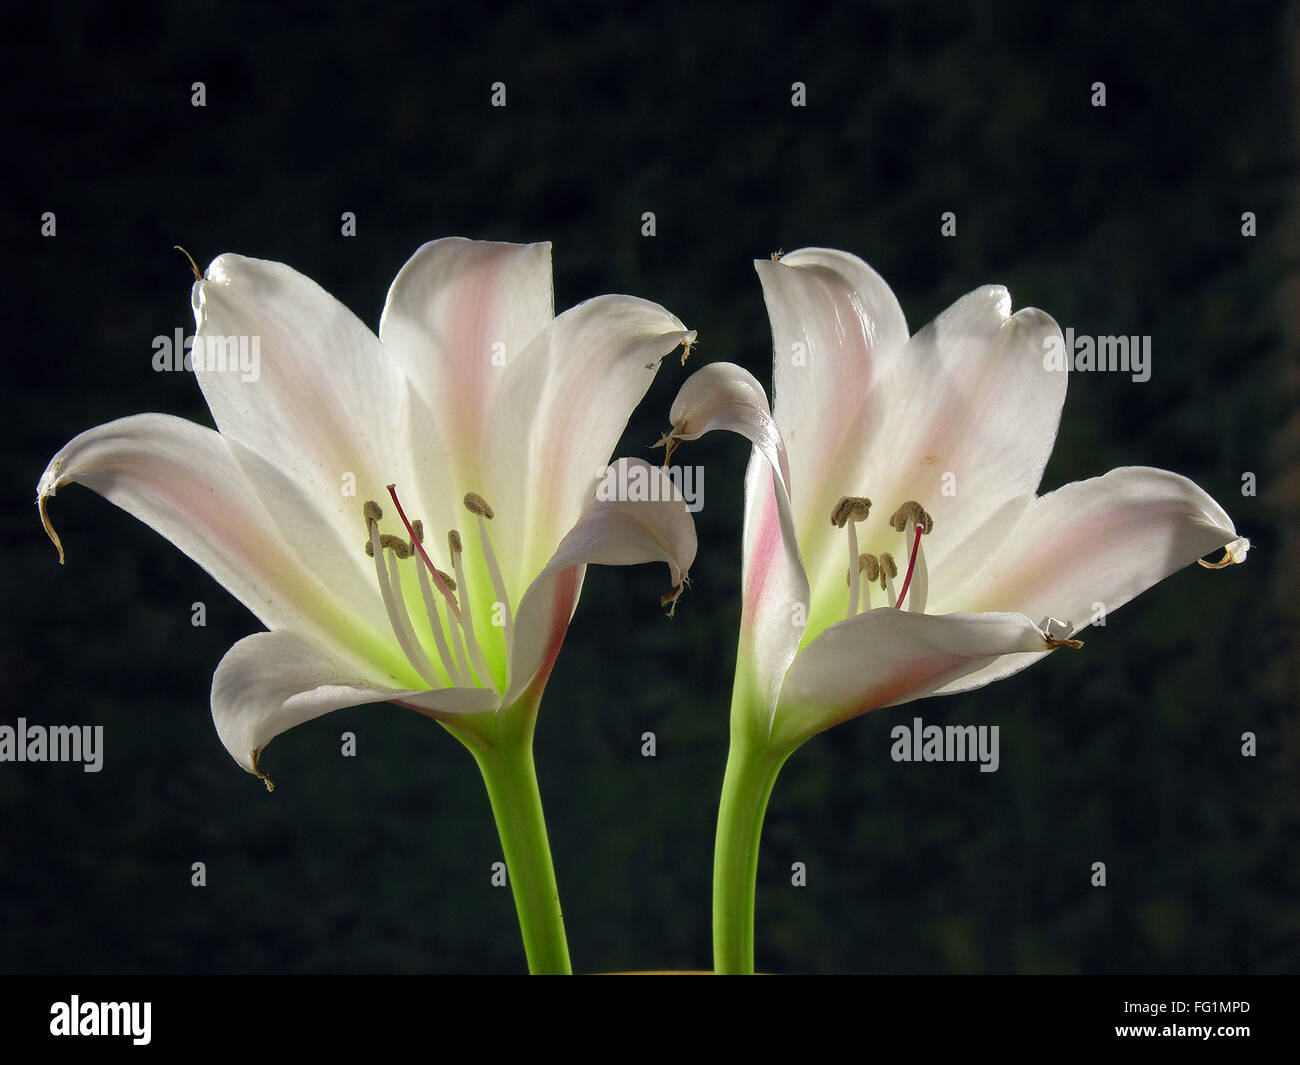 Lily flowers on black background stock photo 95924597 alamy lily flowers on black background izmirmasajfo